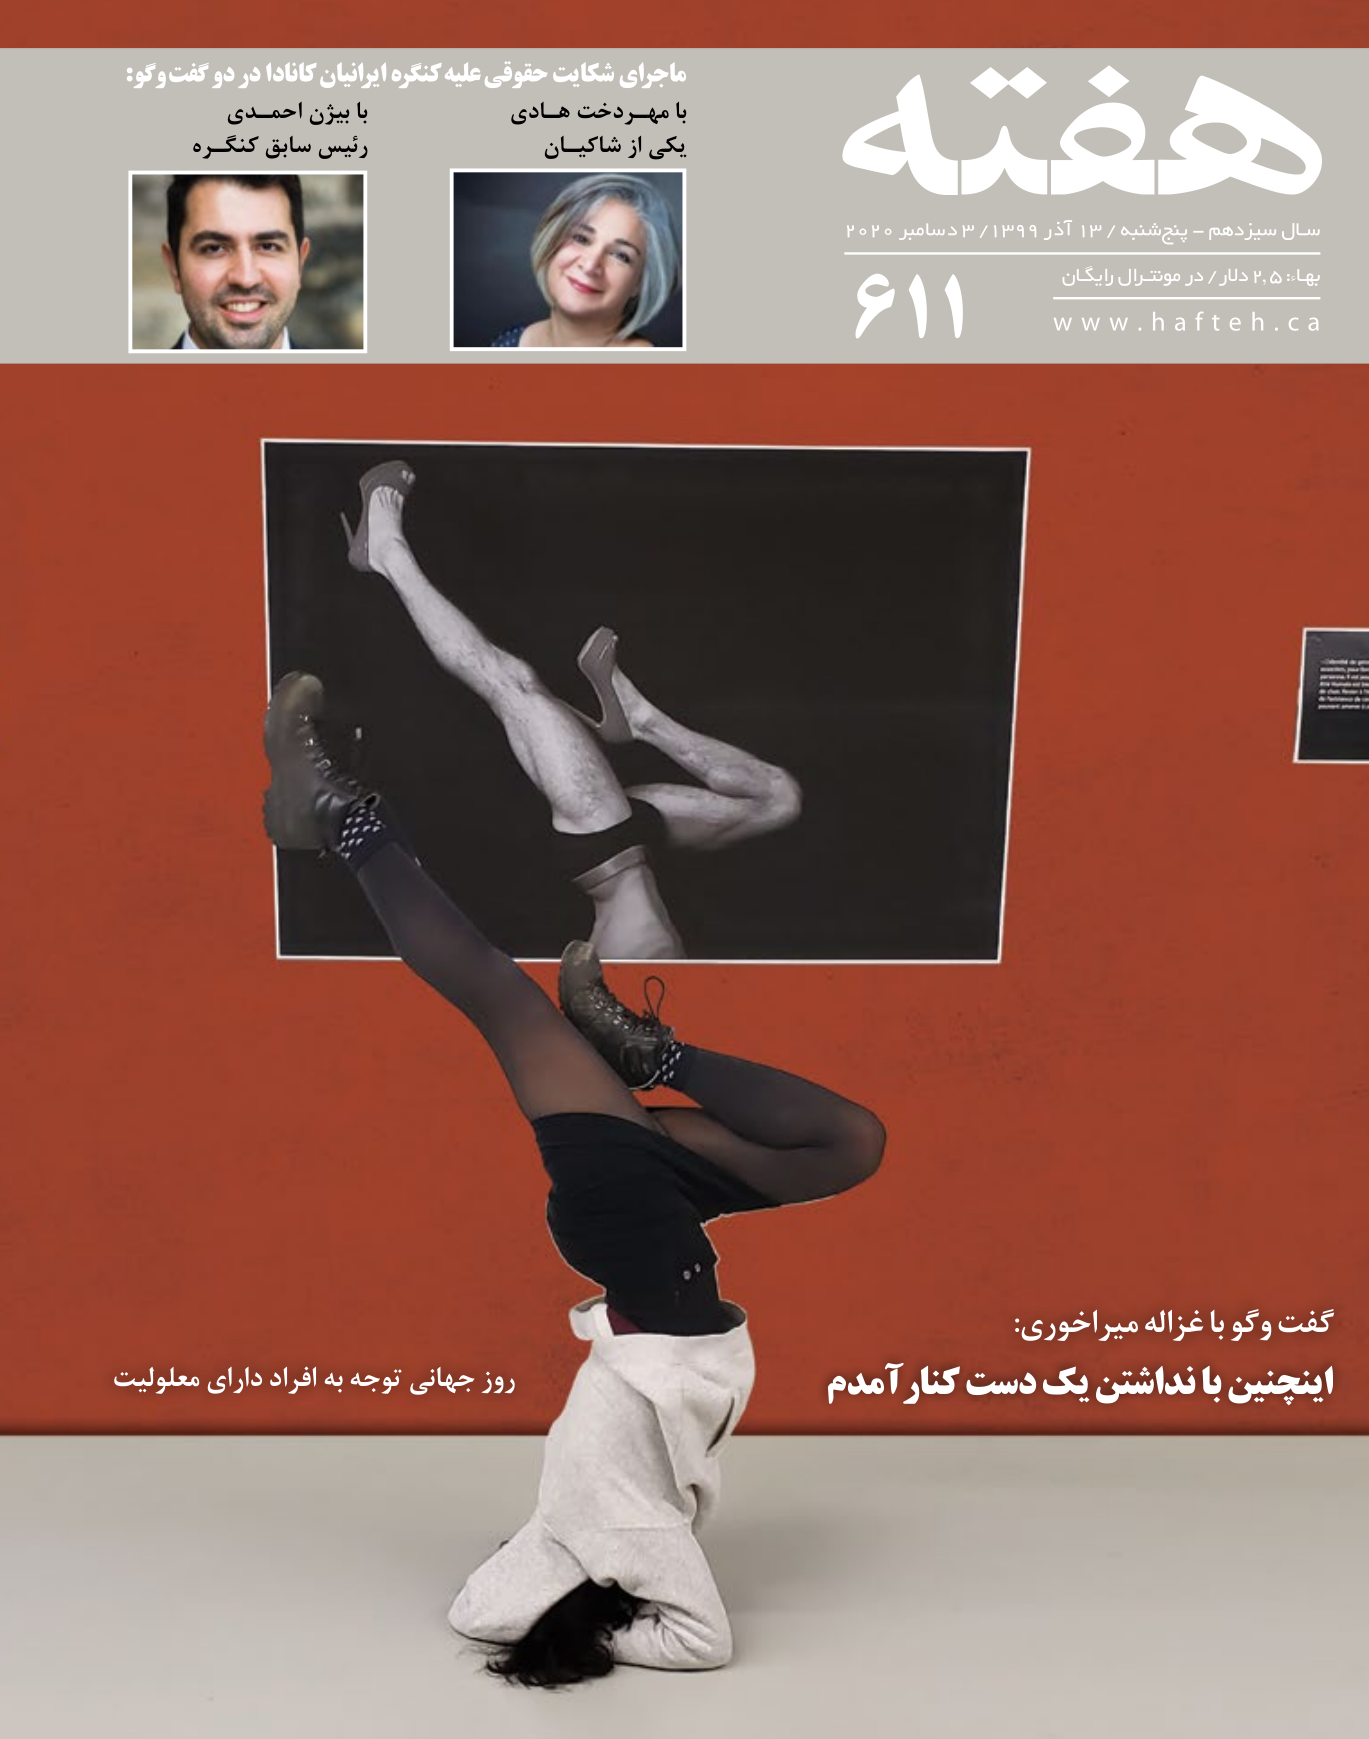 The 611th issue of HafteH, published on Dec. 1, 2020, was a special issue for the International Day of Persons with Disabilities